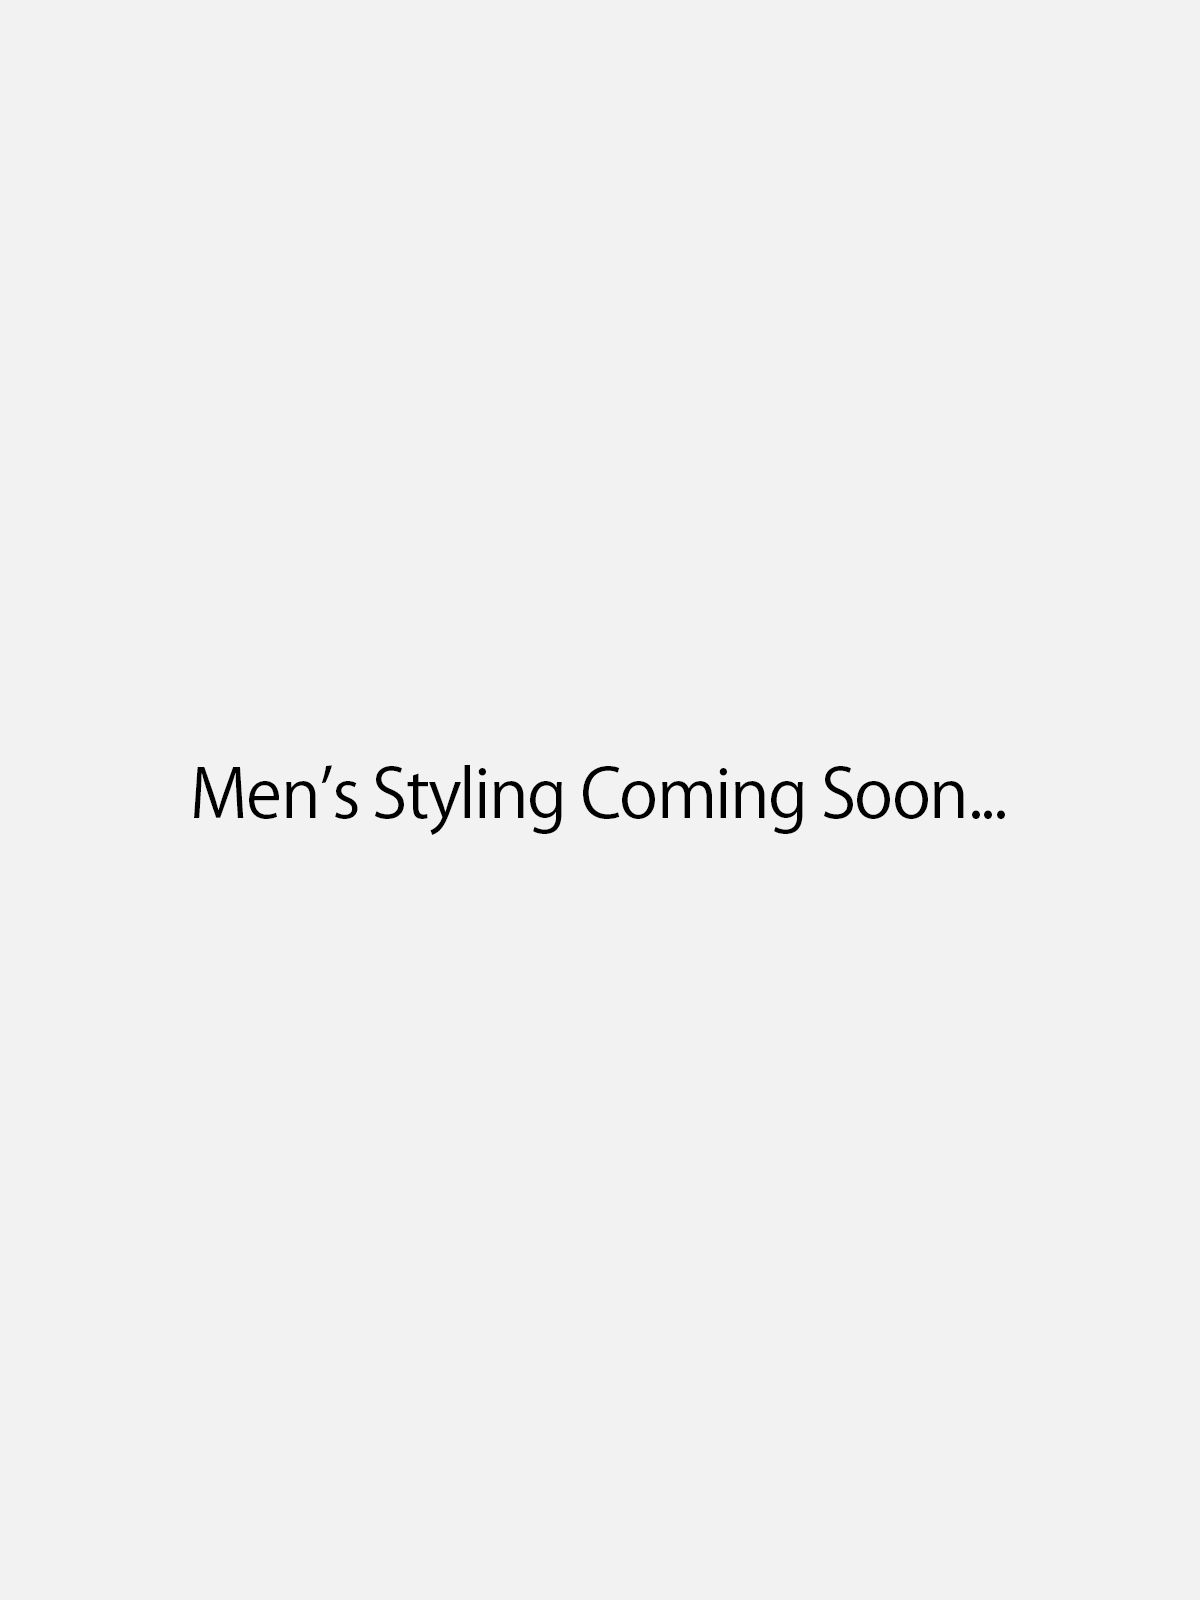 Men's Styling Coming Soon...の写真